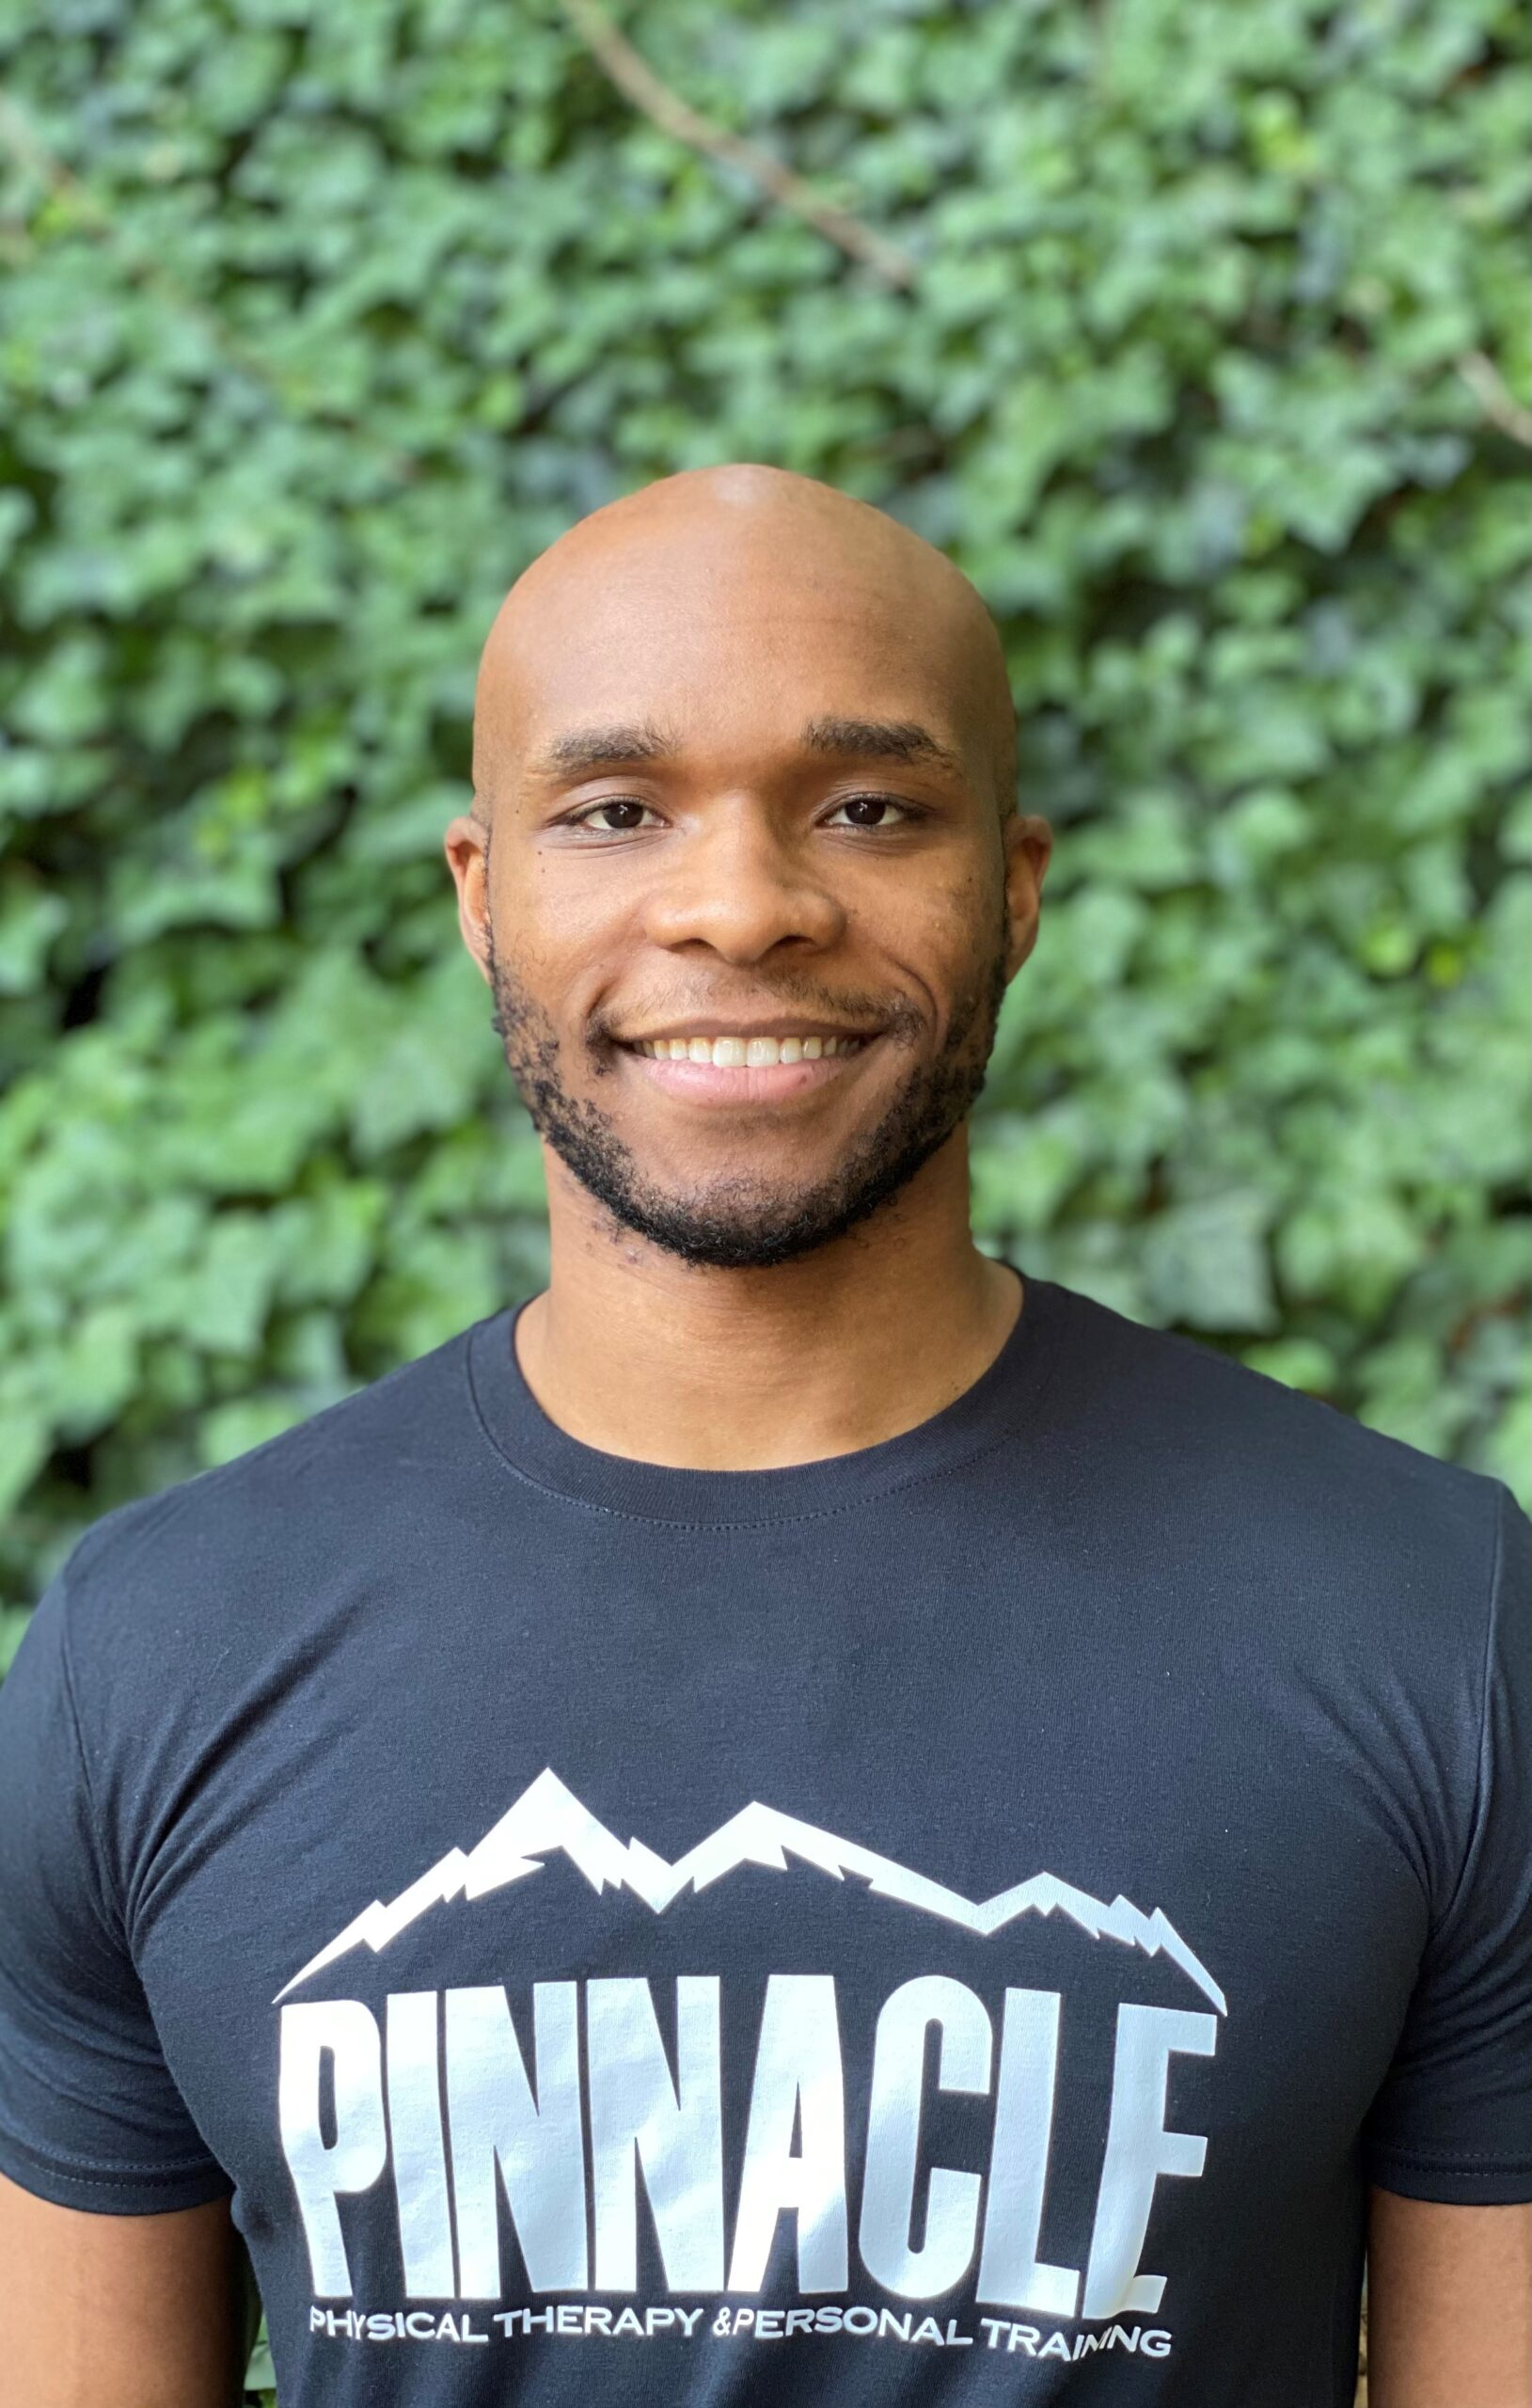 Tory Morton - Pinnacle Physical Therapy & Personal Training